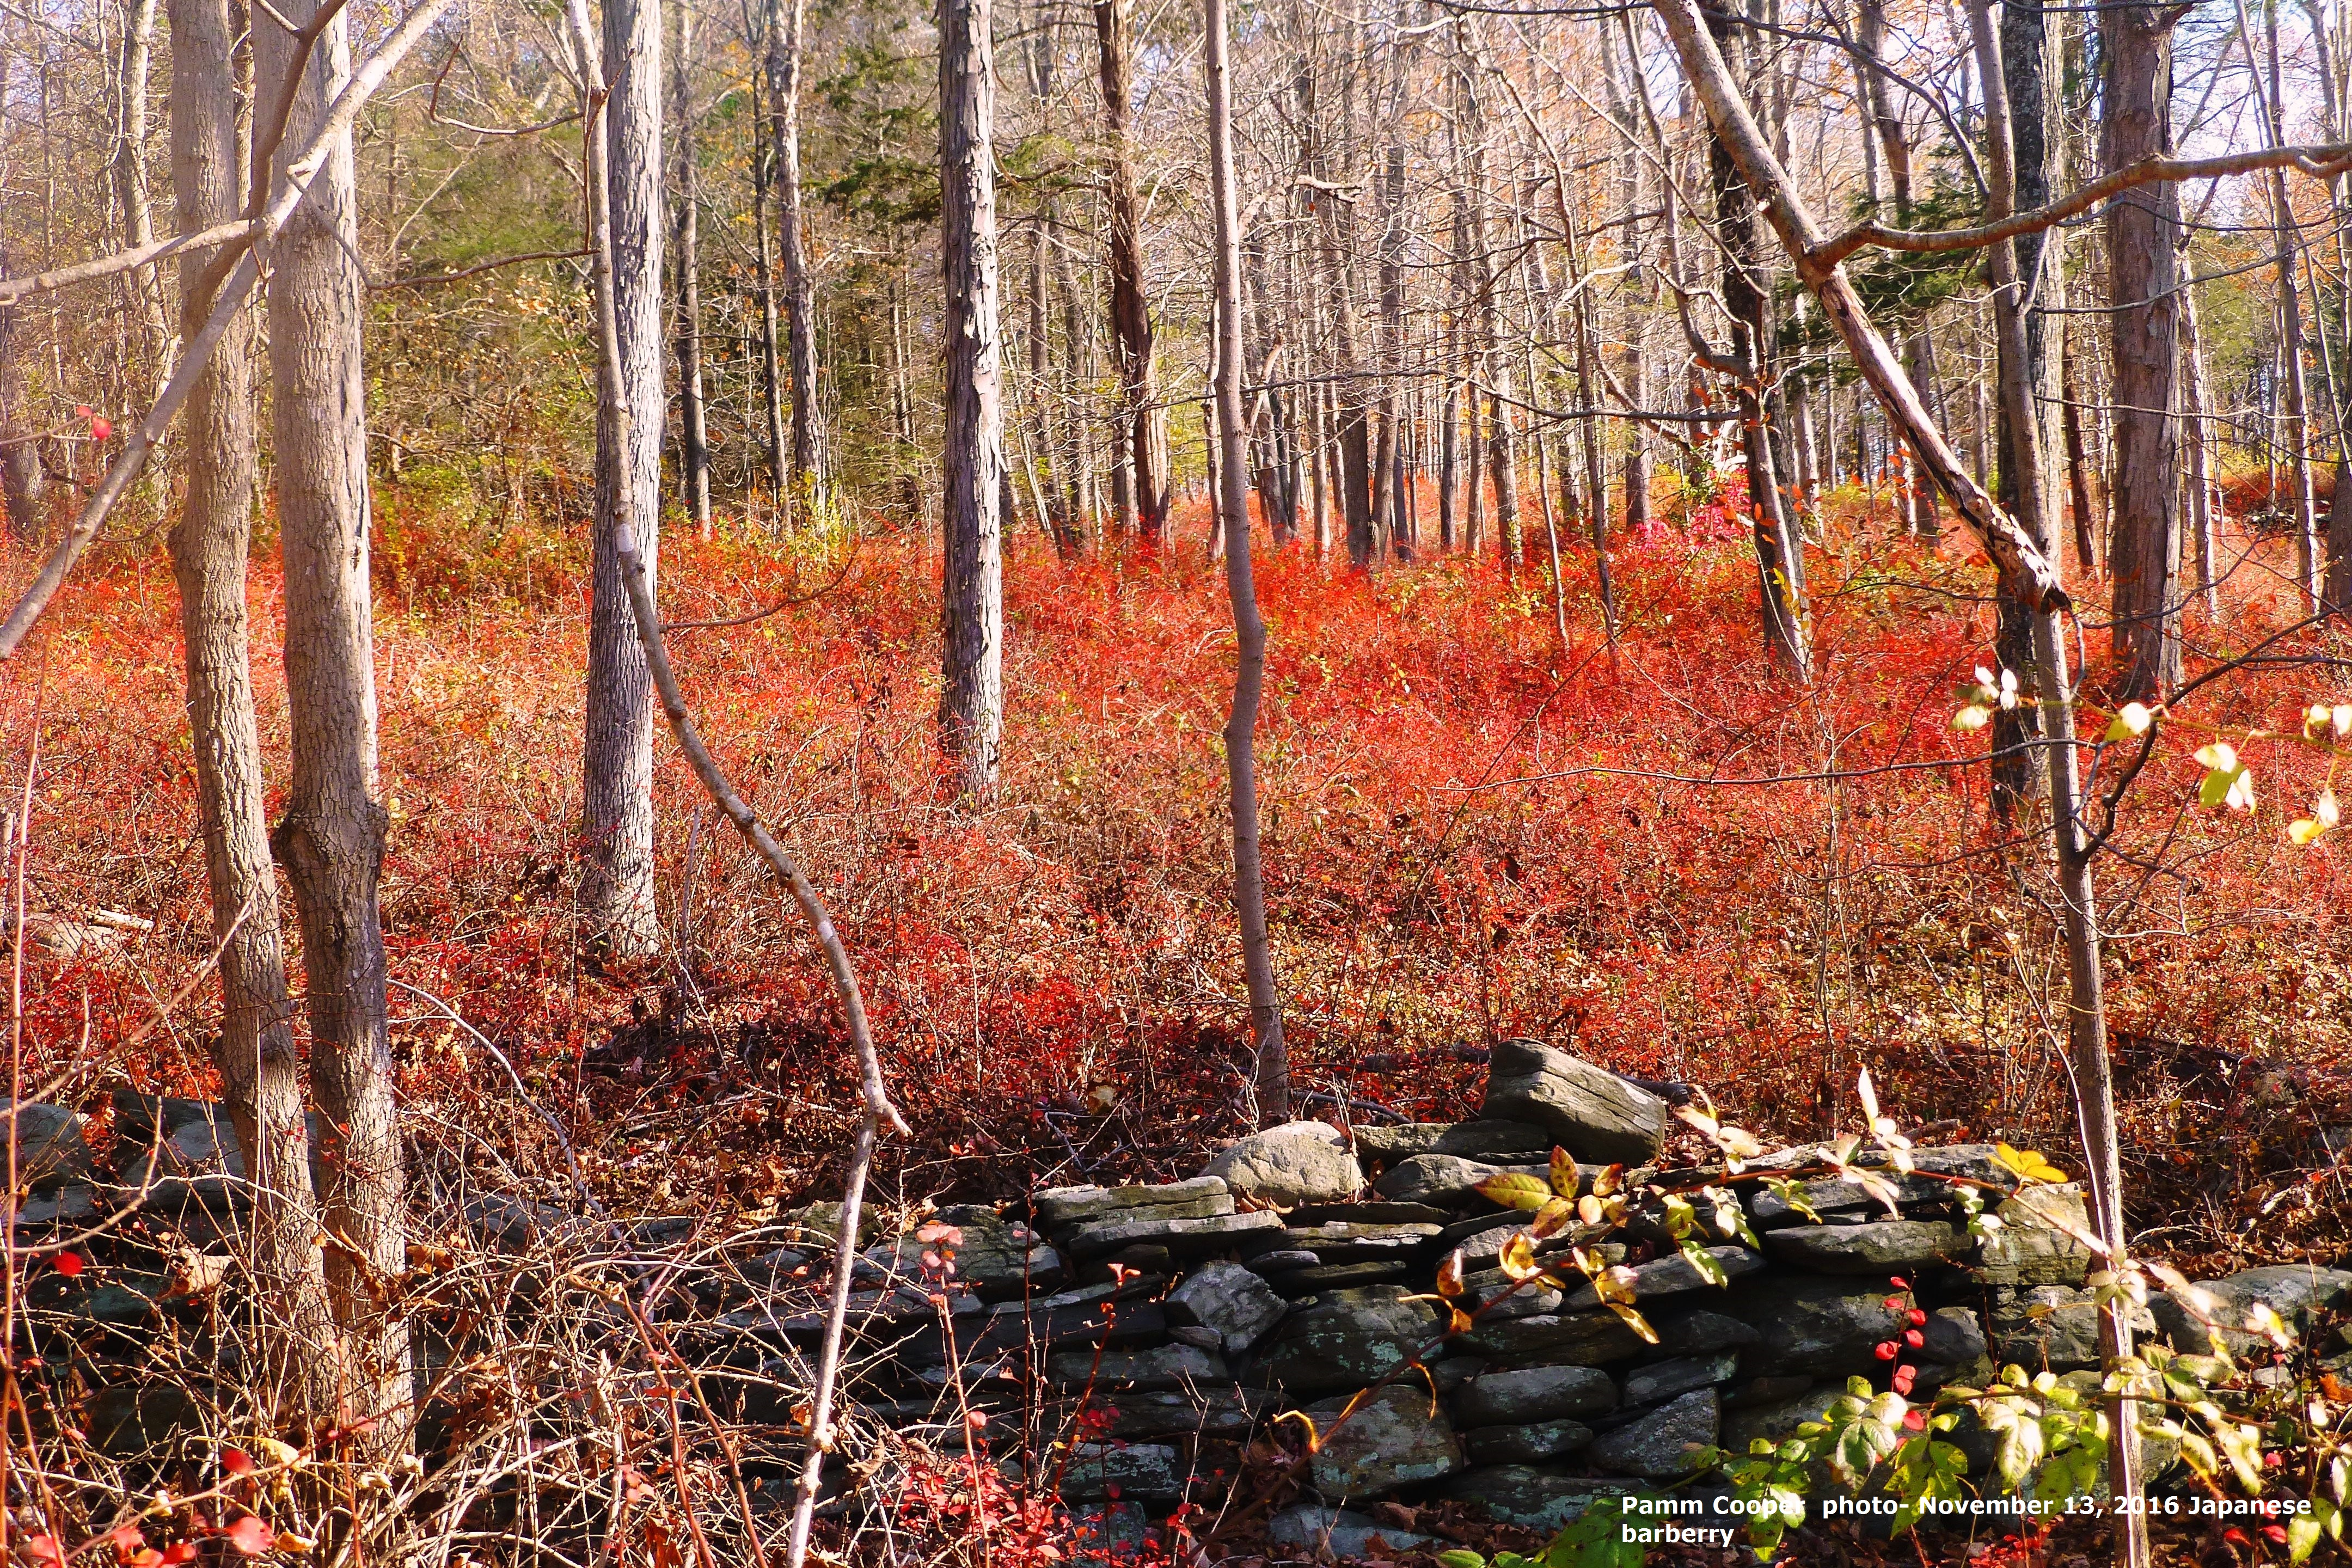 japanese-barberry-covers-the-forest-floor-november-13-2016